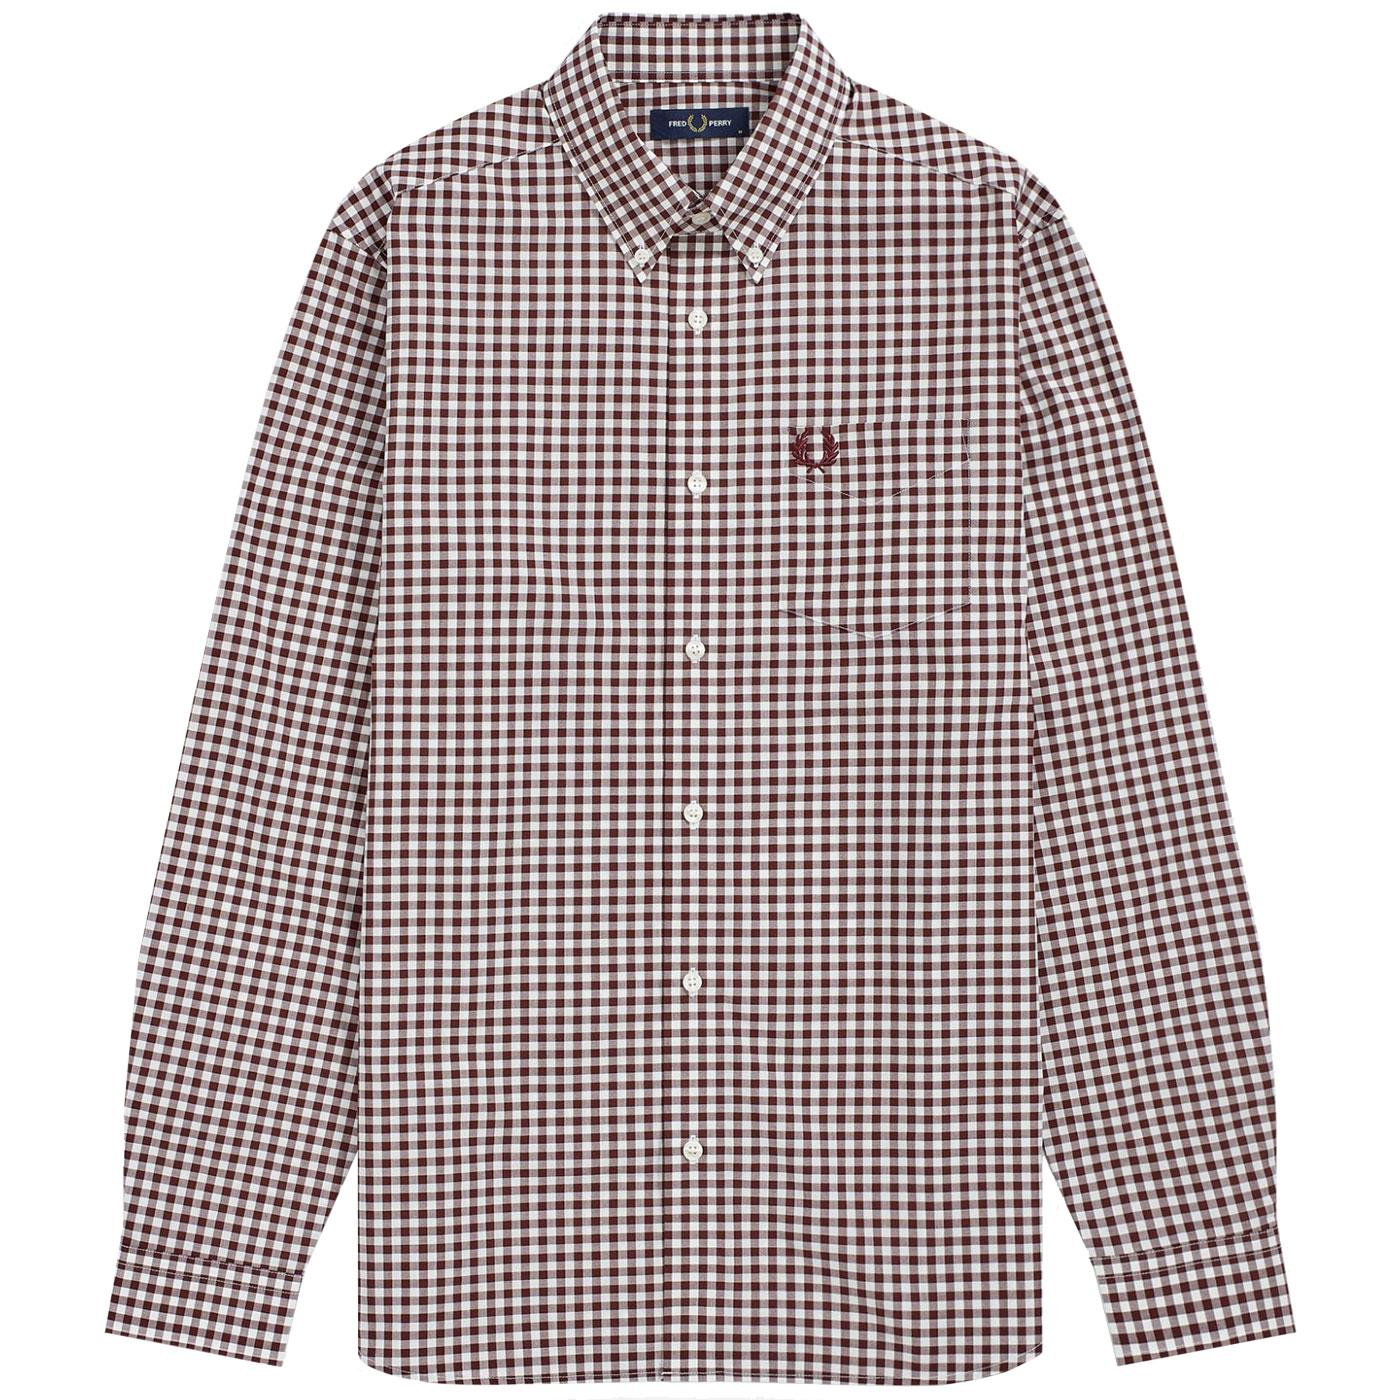 FRED PERRY Mod Long Sleeve Gingham Check Shirt M